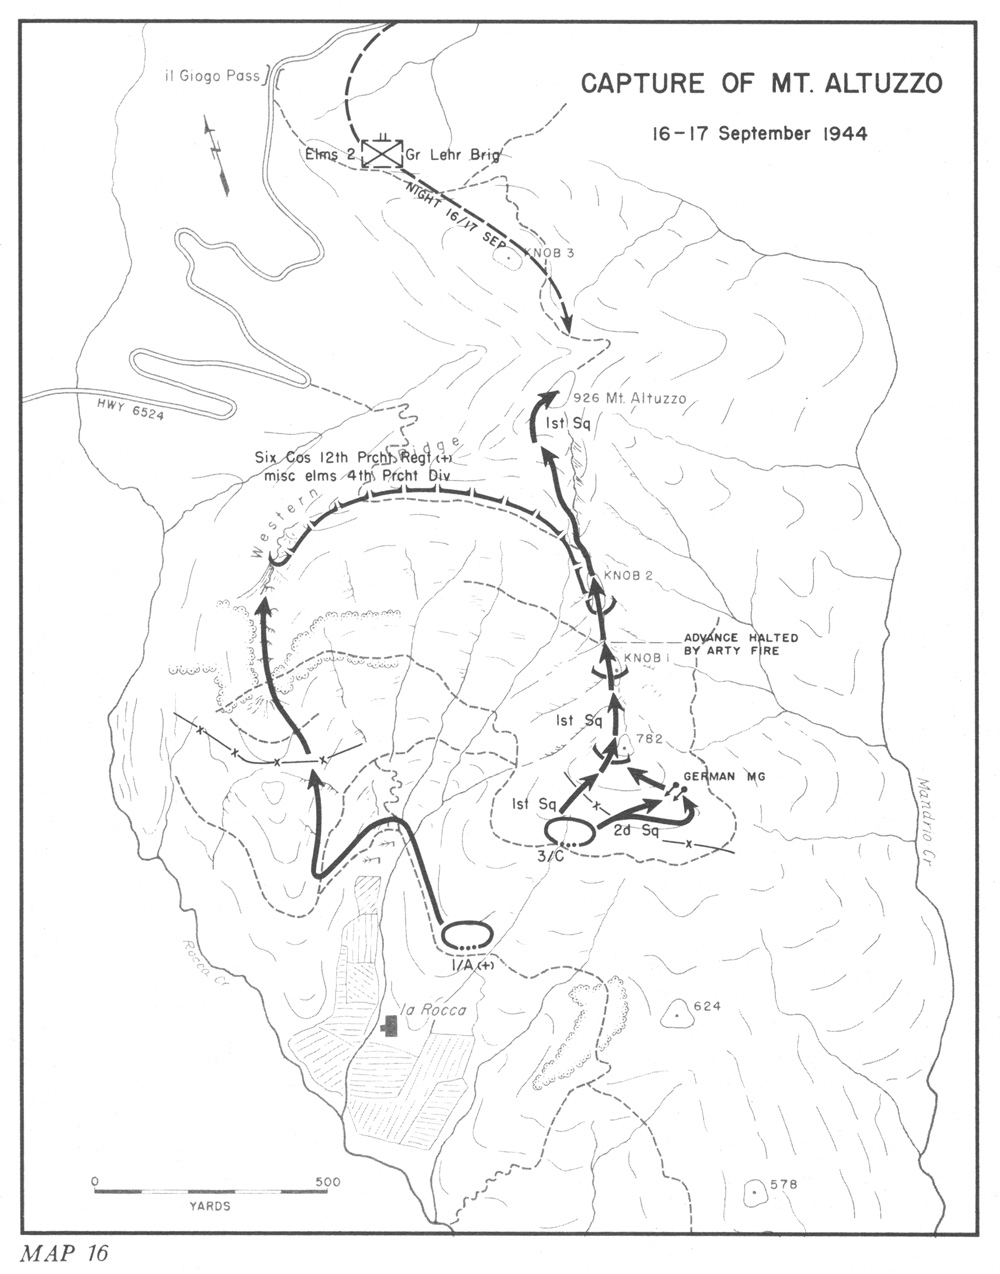 hyperwar three battles arnaville altuzzo and schmidt 65th Infantry Regiment capture of mt altuzzo 16 17 september 1944